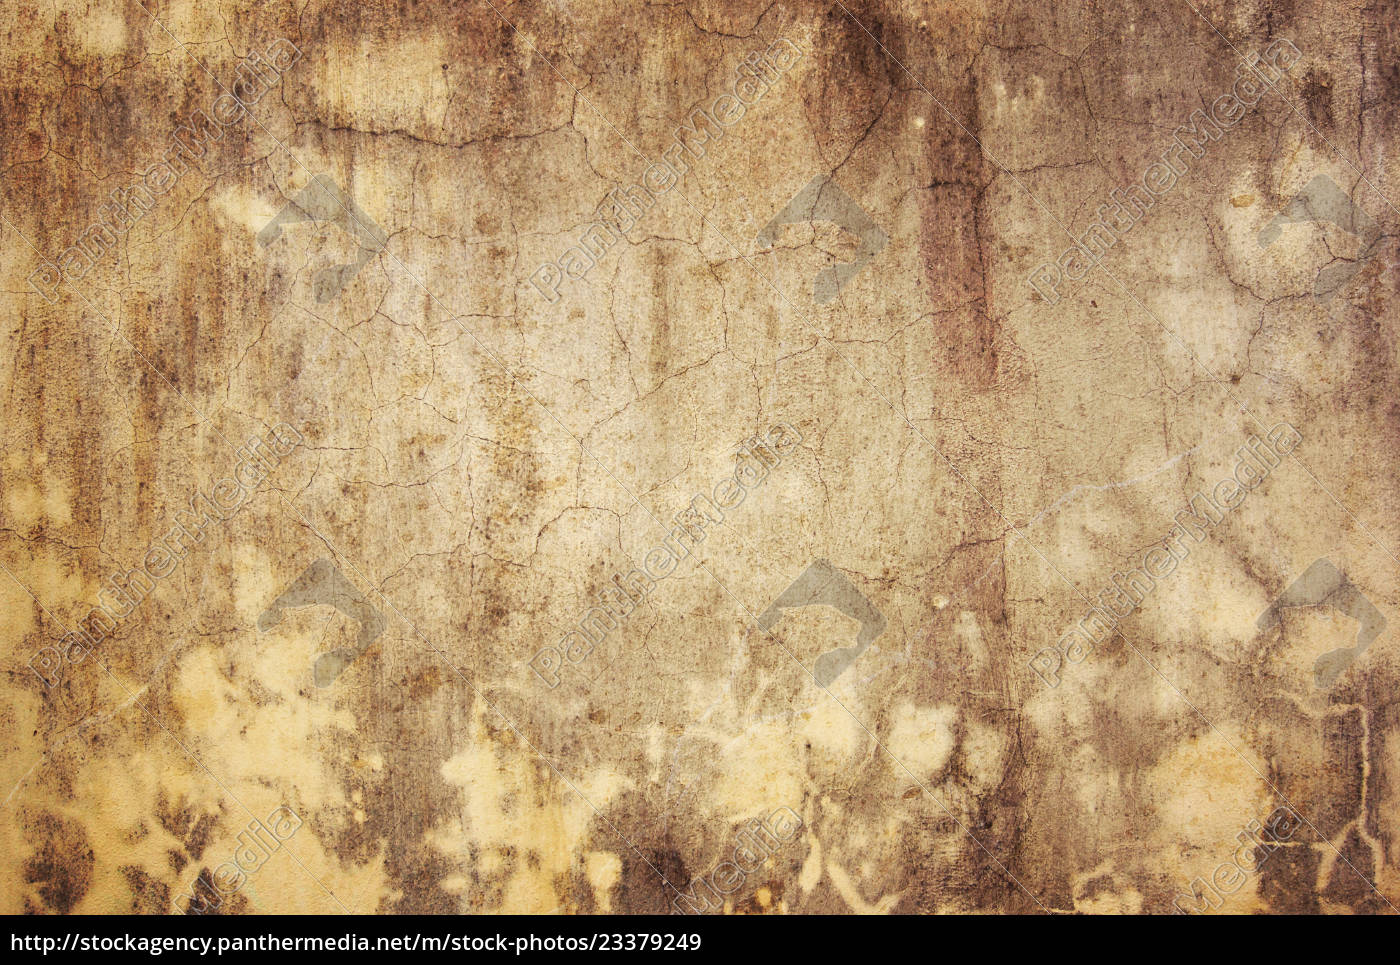 Royalty free image 23379249 , Vintage texture in grunge style